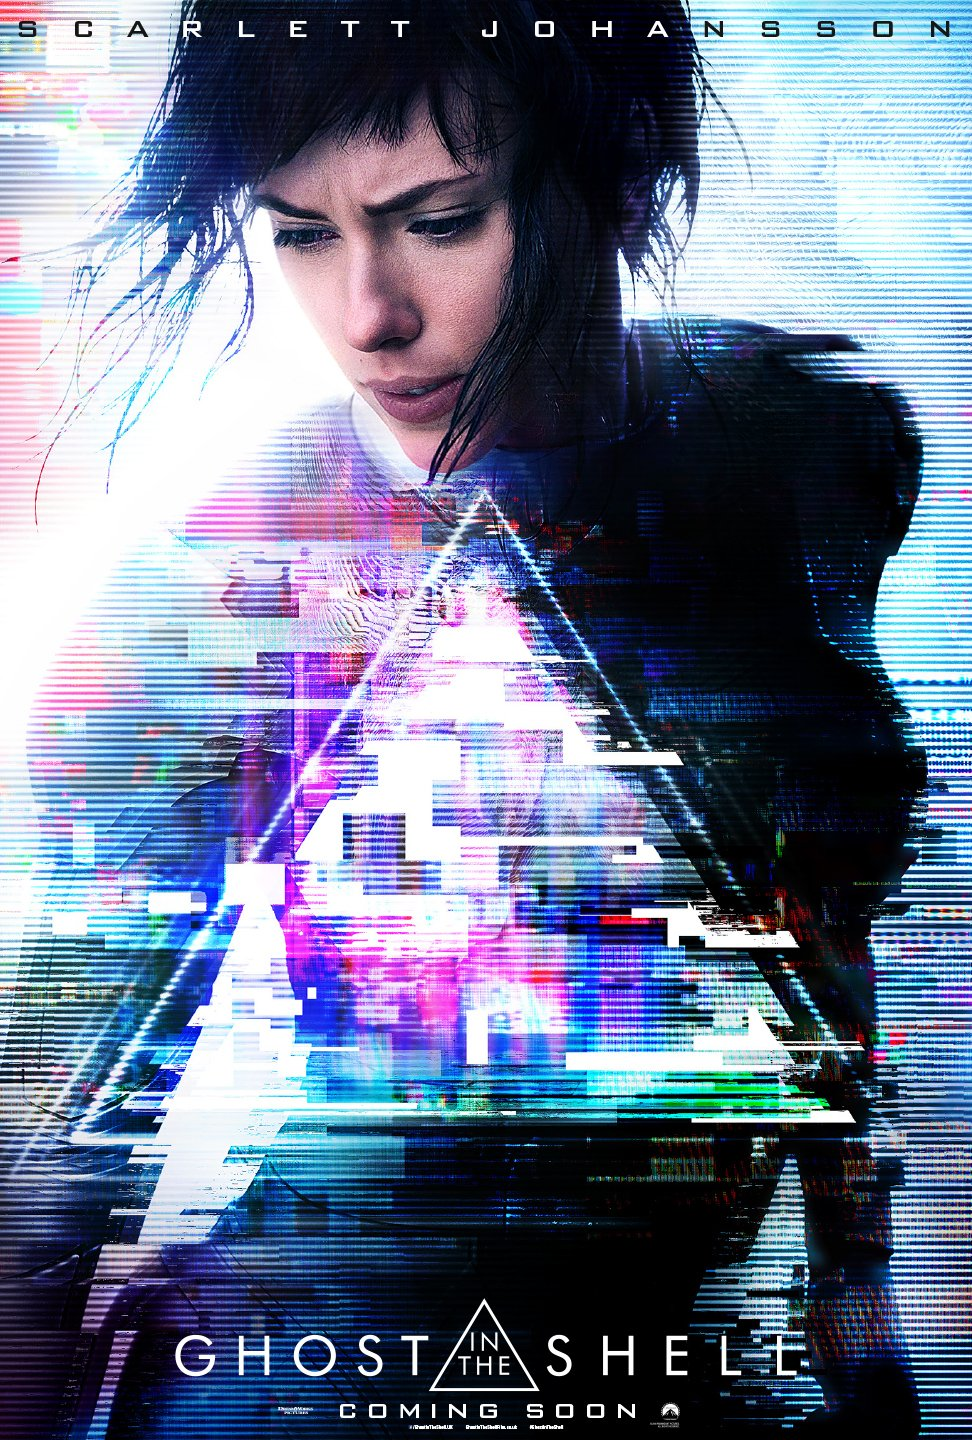 Ghost In The Shell film review: does the anime translate into live-action?